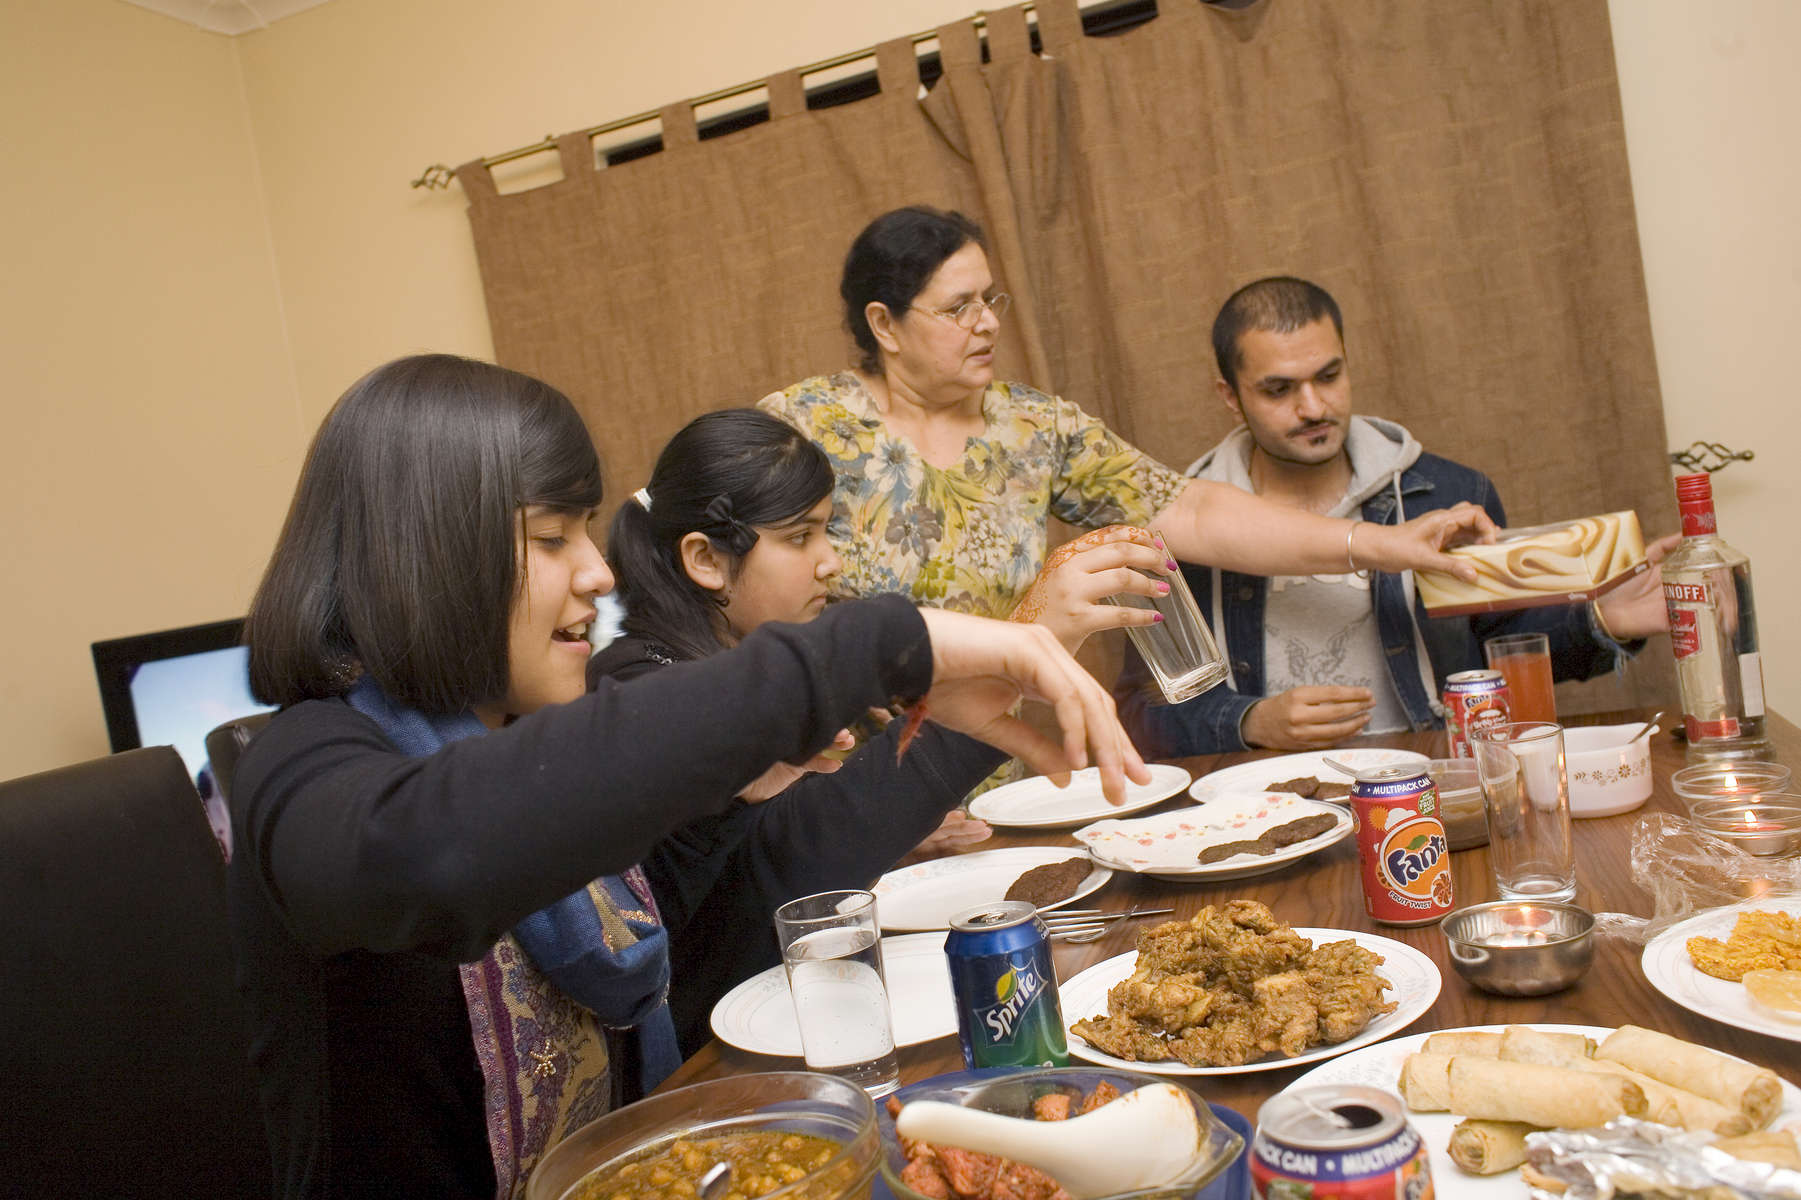 15 year old Robyn Kullar (left) with her sister Alisha (13), grandmother Kuldeep and Uncle, Blaise. They are having dinner together for Diwali, an important festival in the Sikh calendar. Robyn and Alsiha are pupils at Villiers High School in the town of Southall. It has a very wide ethnic diversity. 45 different 1st spoken languages are listed among the 1208 pupils. 25 ethnic groups are represented with Indian, Pakistani and Black-Somali the three highest.Southall is a suburban district of West London, England. The town has one of the largest concentrations of South Asian people outside of the Indian sub-continent. Over 55% os Southall's population of 70,000 is Indian/Pakistani, with less than 10% being White British.